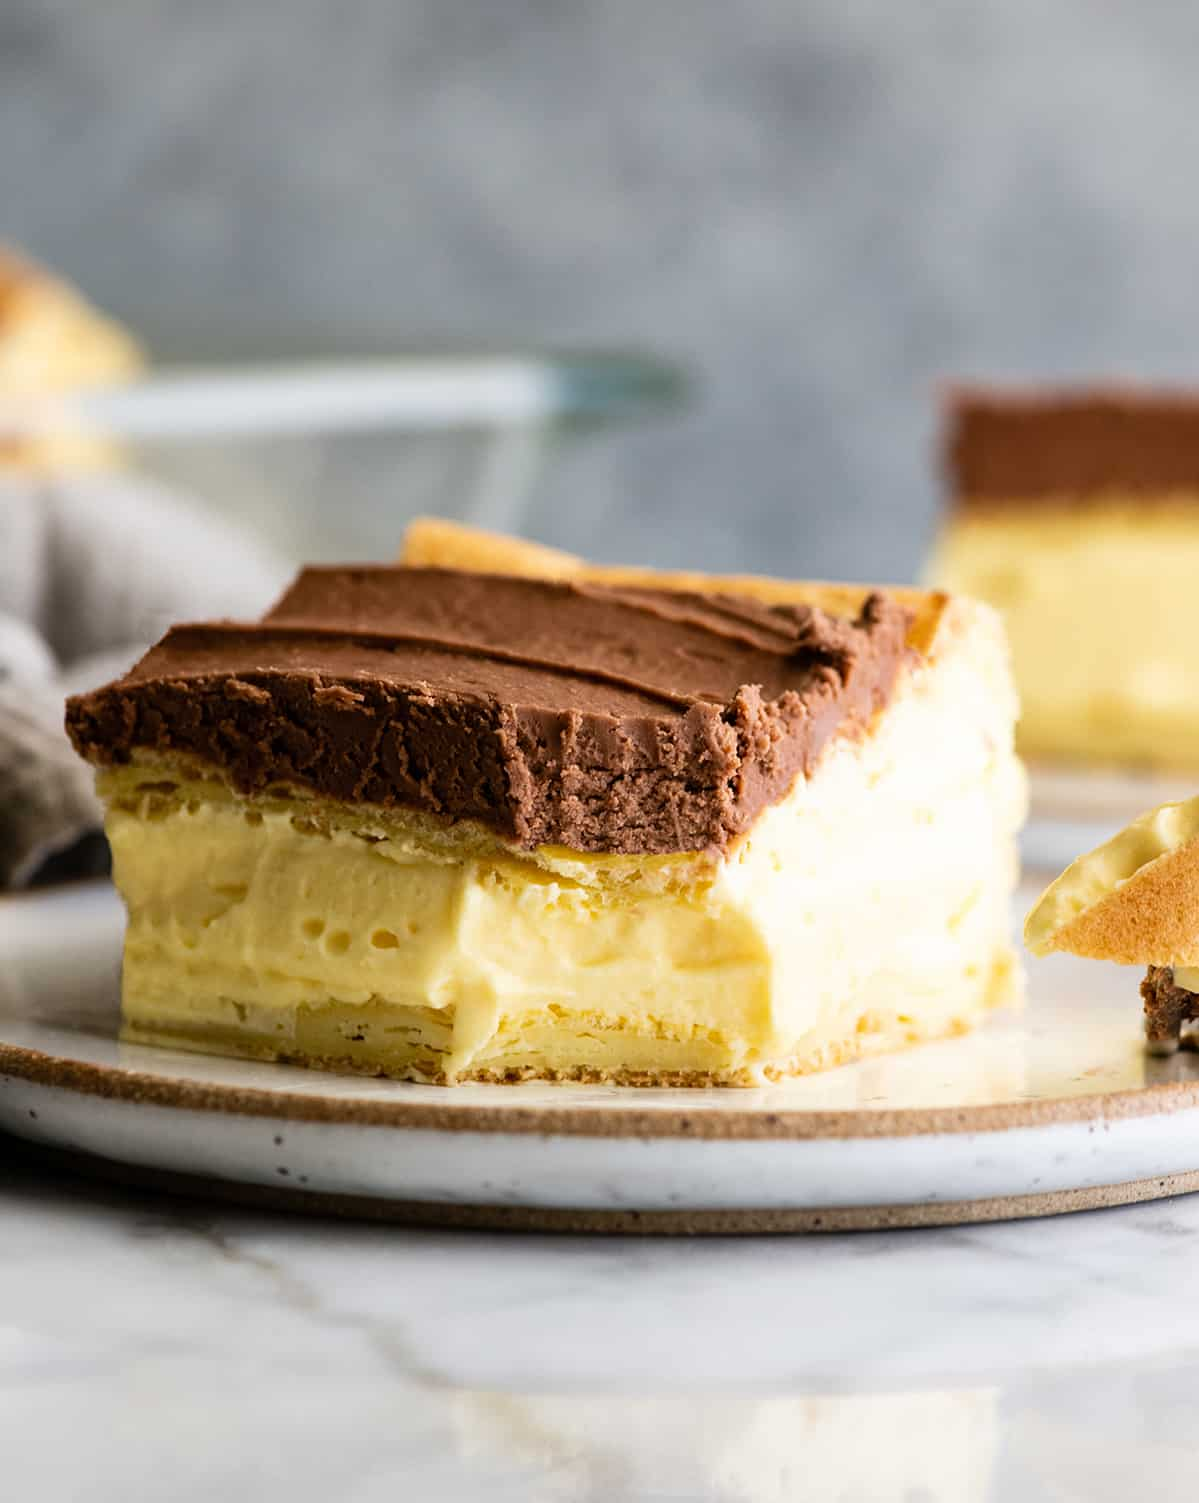 a piece of eclair cake on a plate with a bite taken out of it